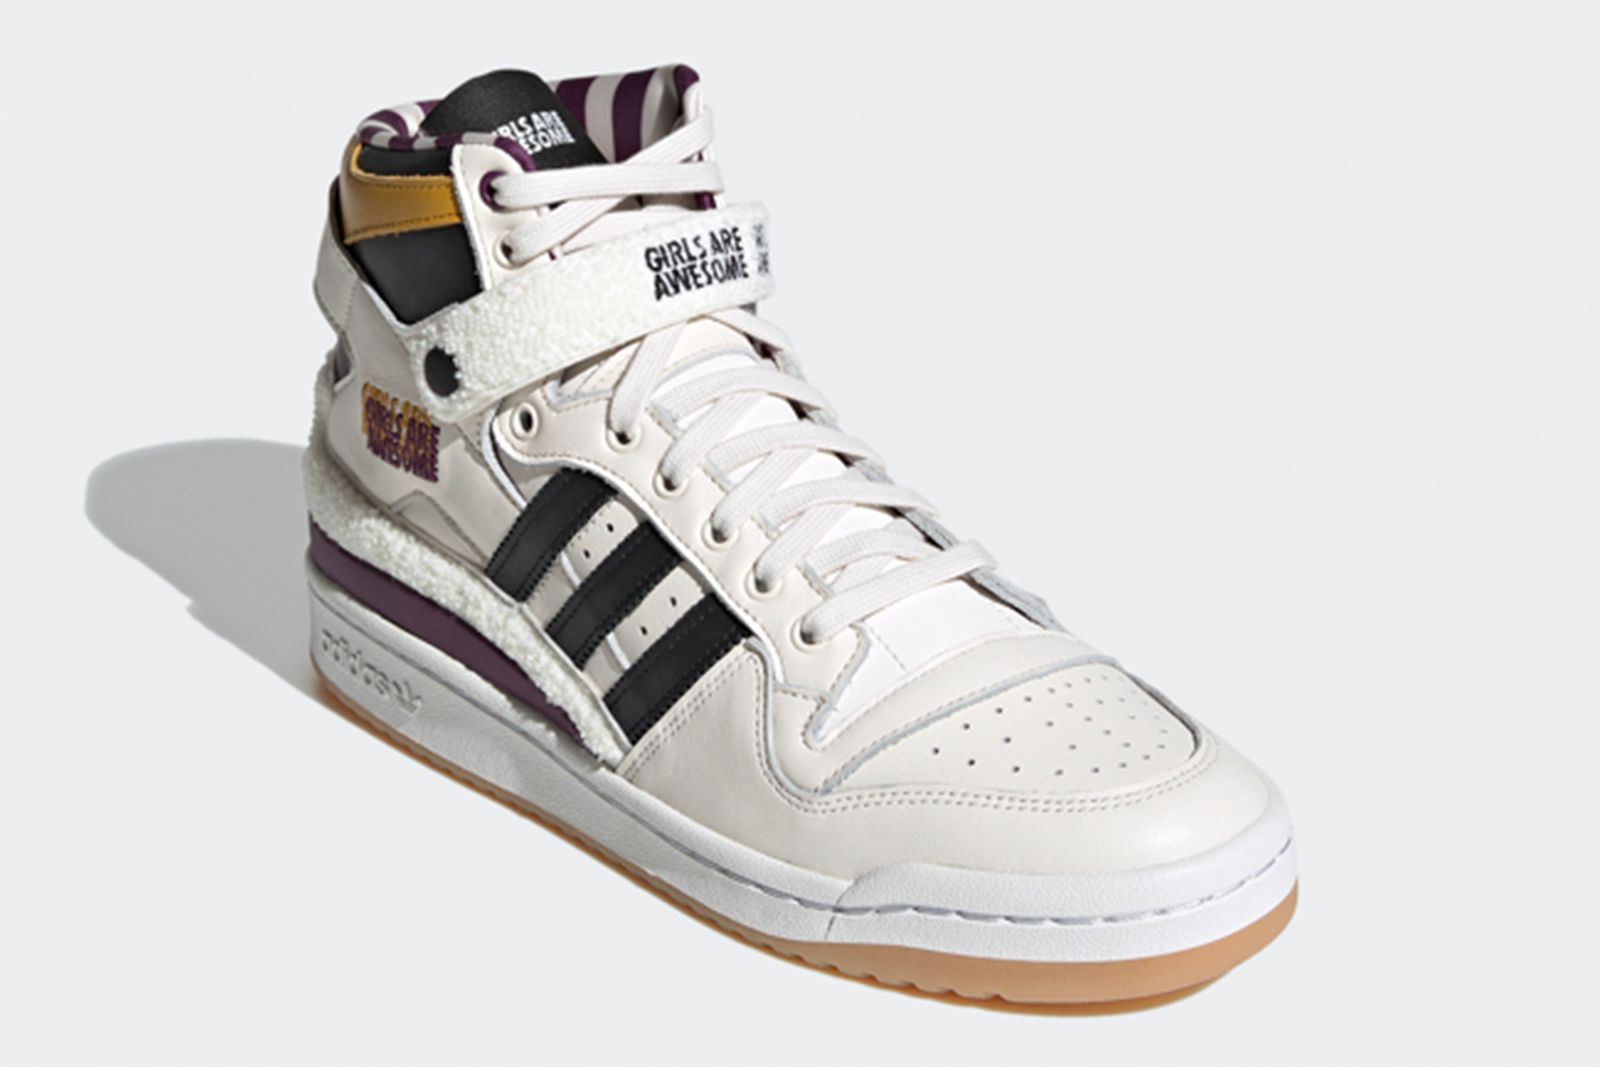 girls-are-awesome-adidas-originals-forum-release-date-price-prdct-02